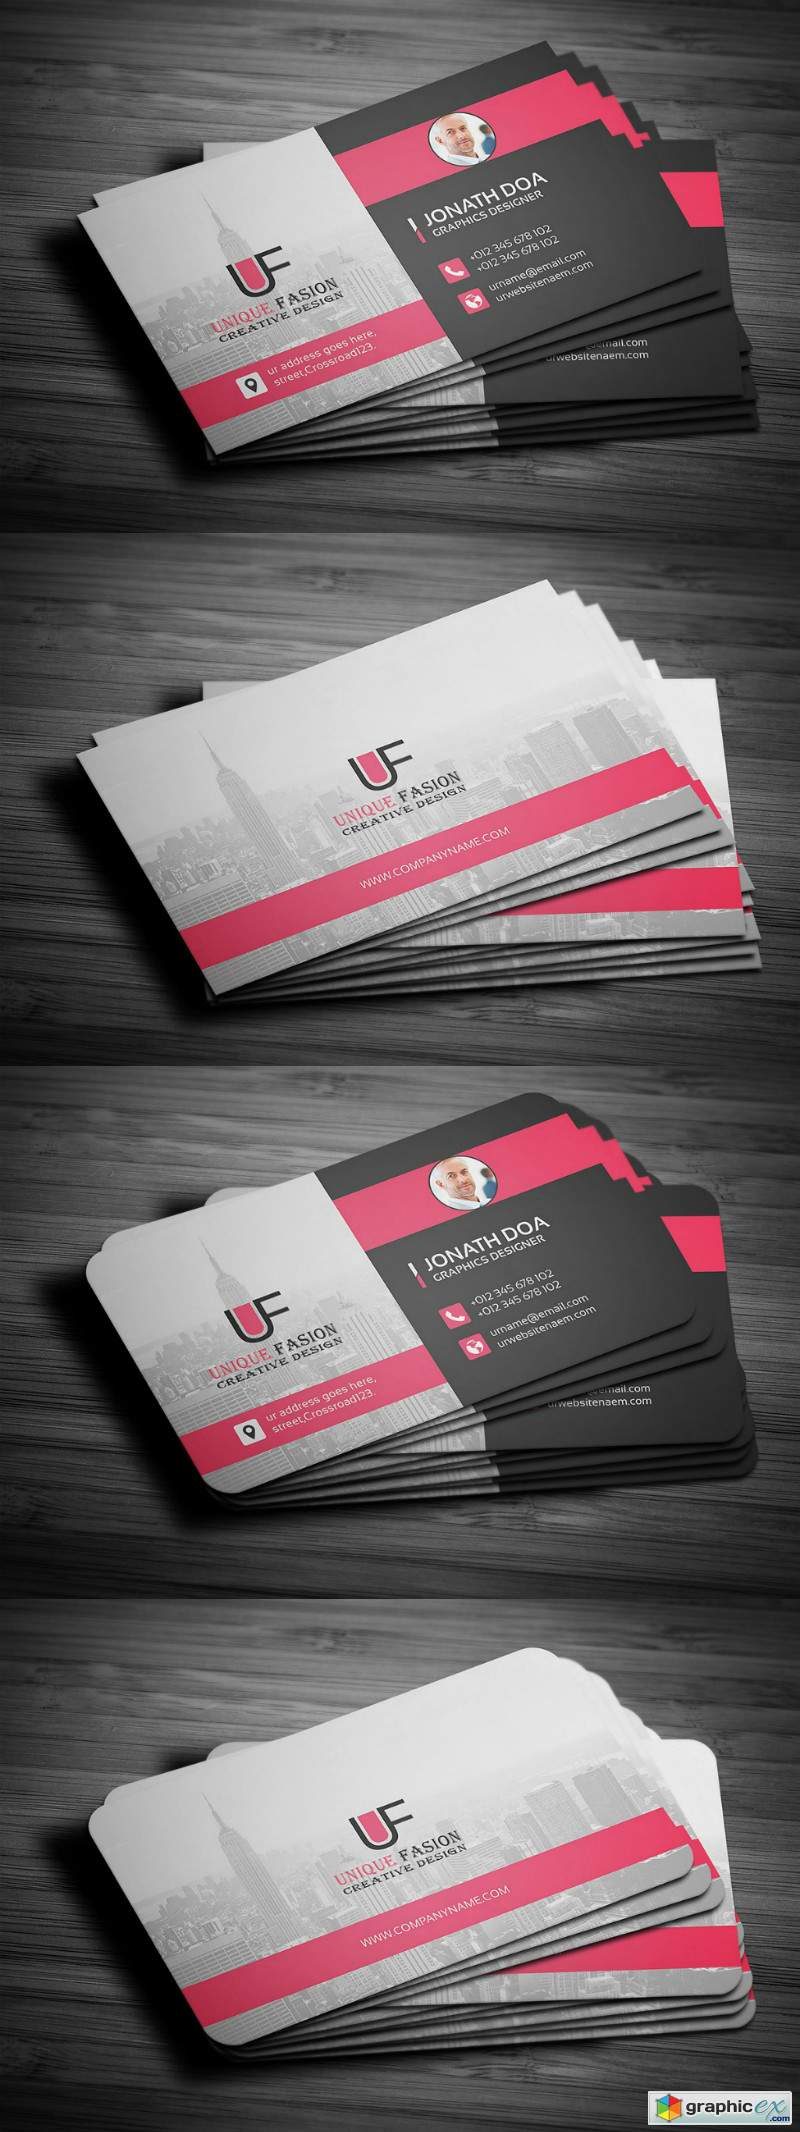 Business Card 3380147